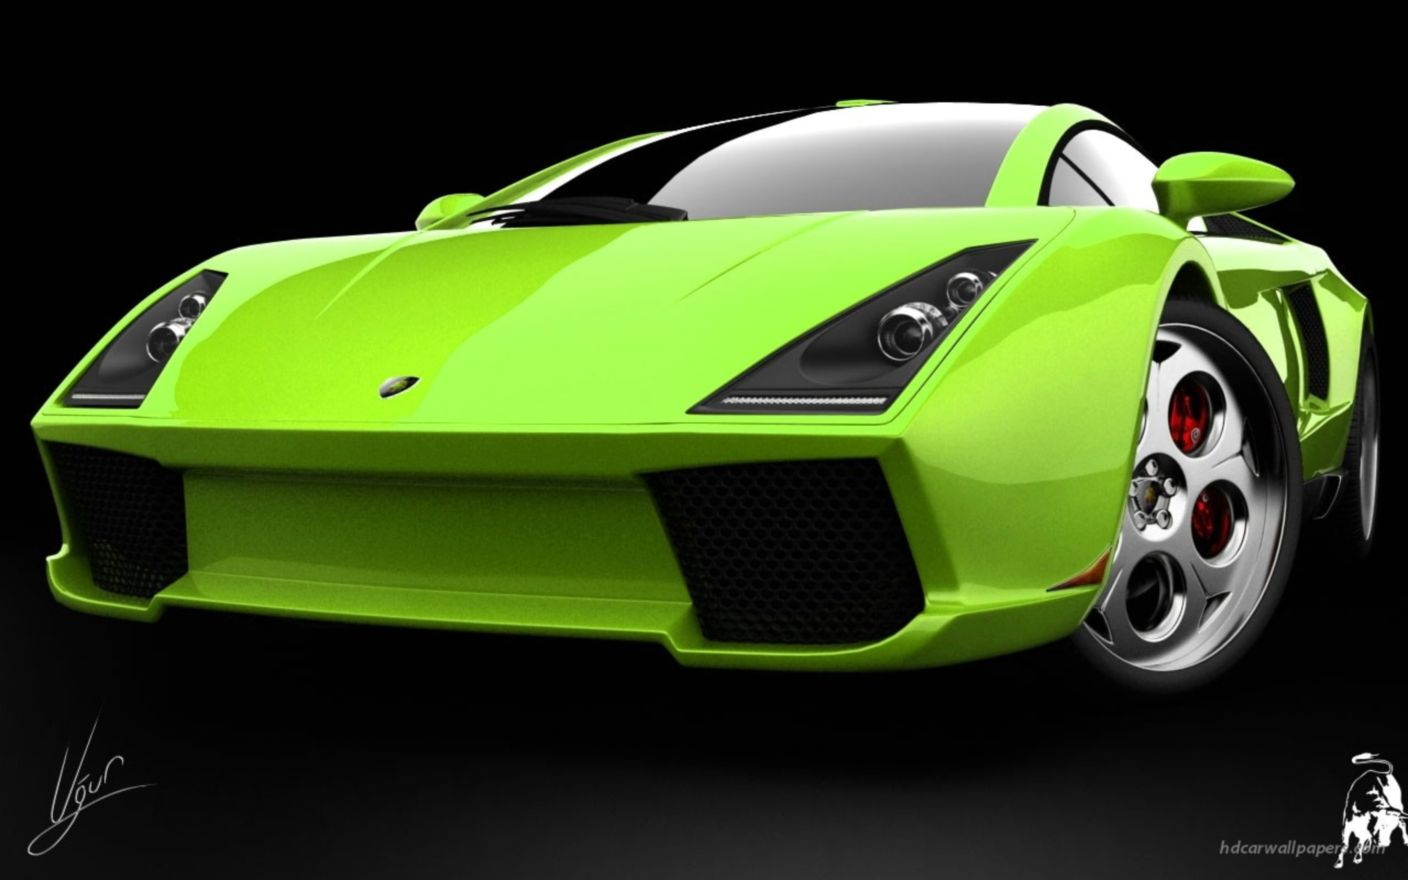 Download free HD Lamborghini Green Concept Wide Wallpaper, image